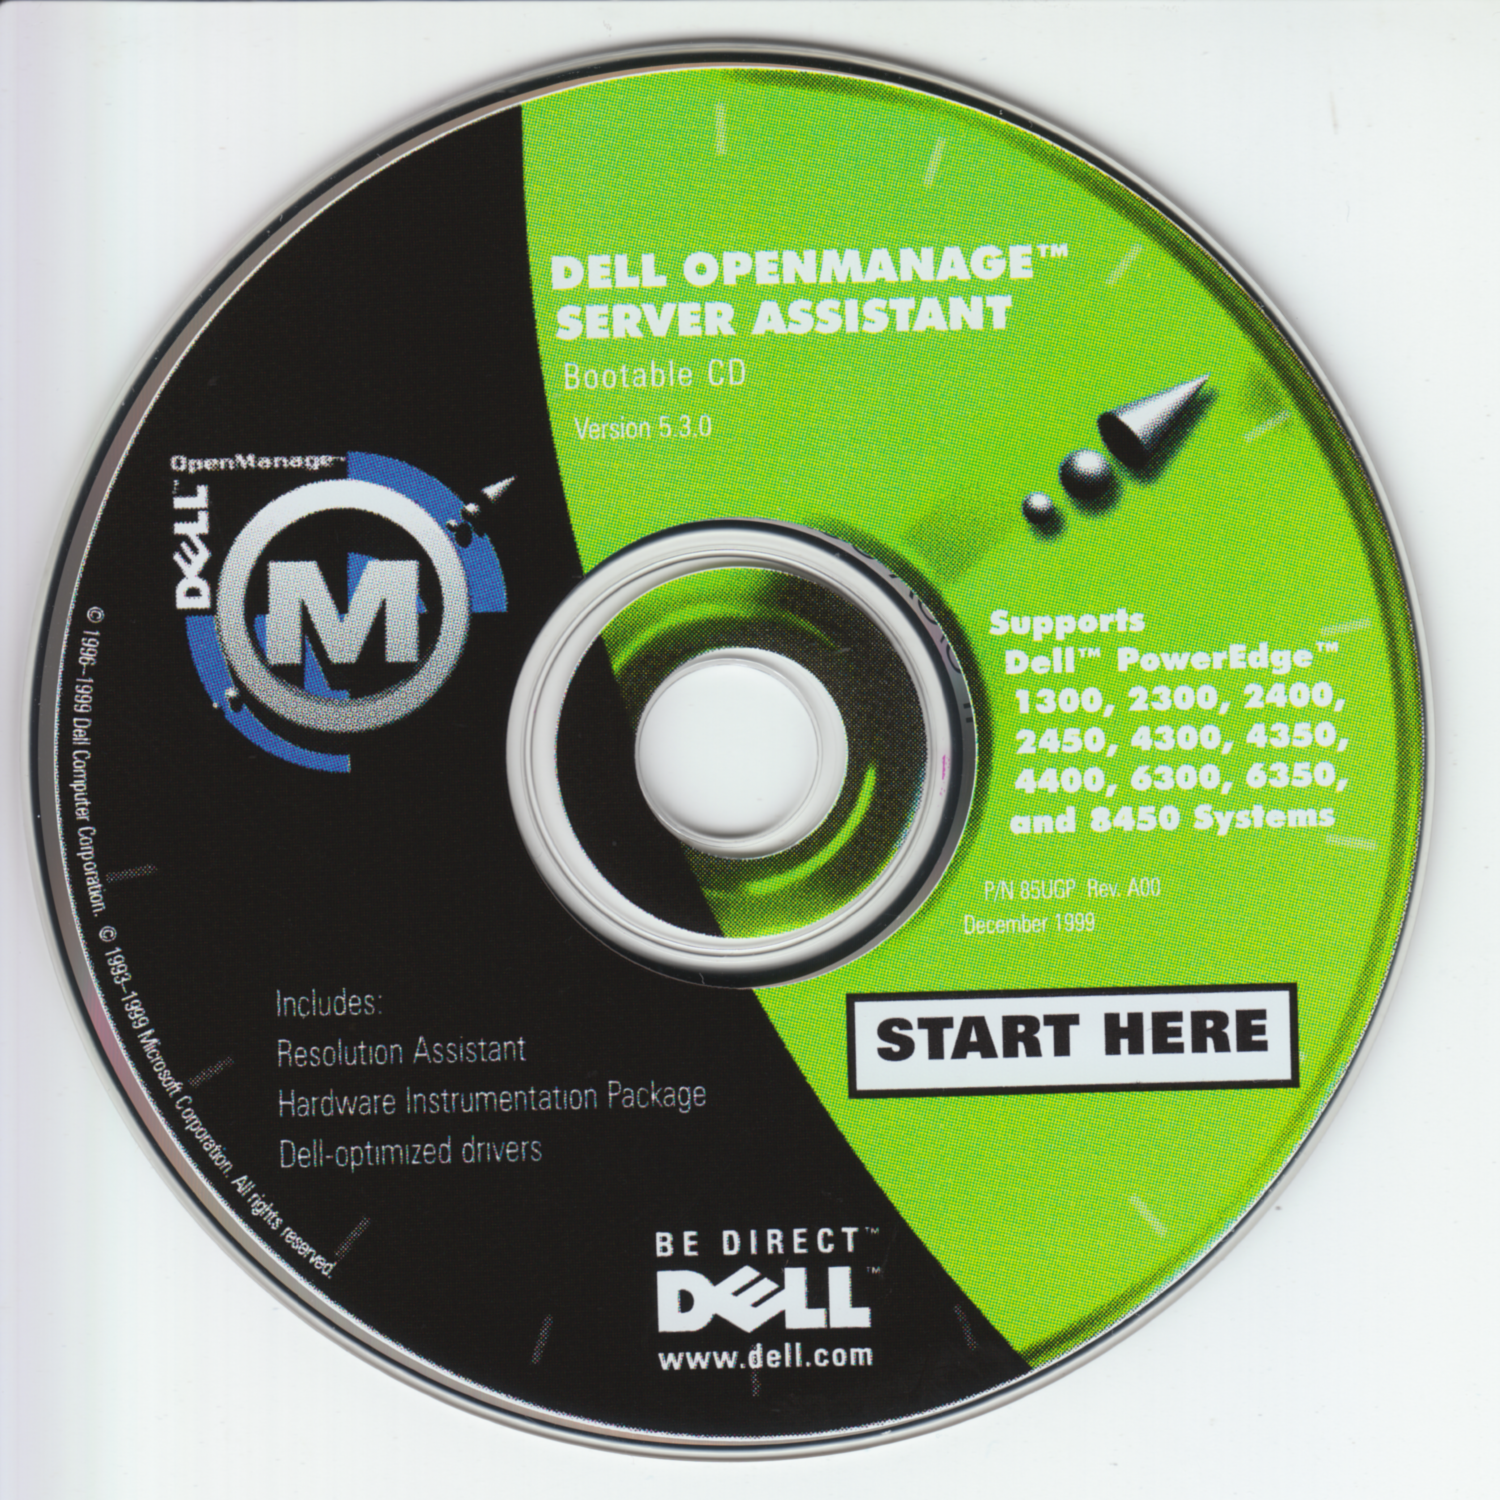 Dell OpenManage Server Assistant v5.3.0 (85UGP-A00)